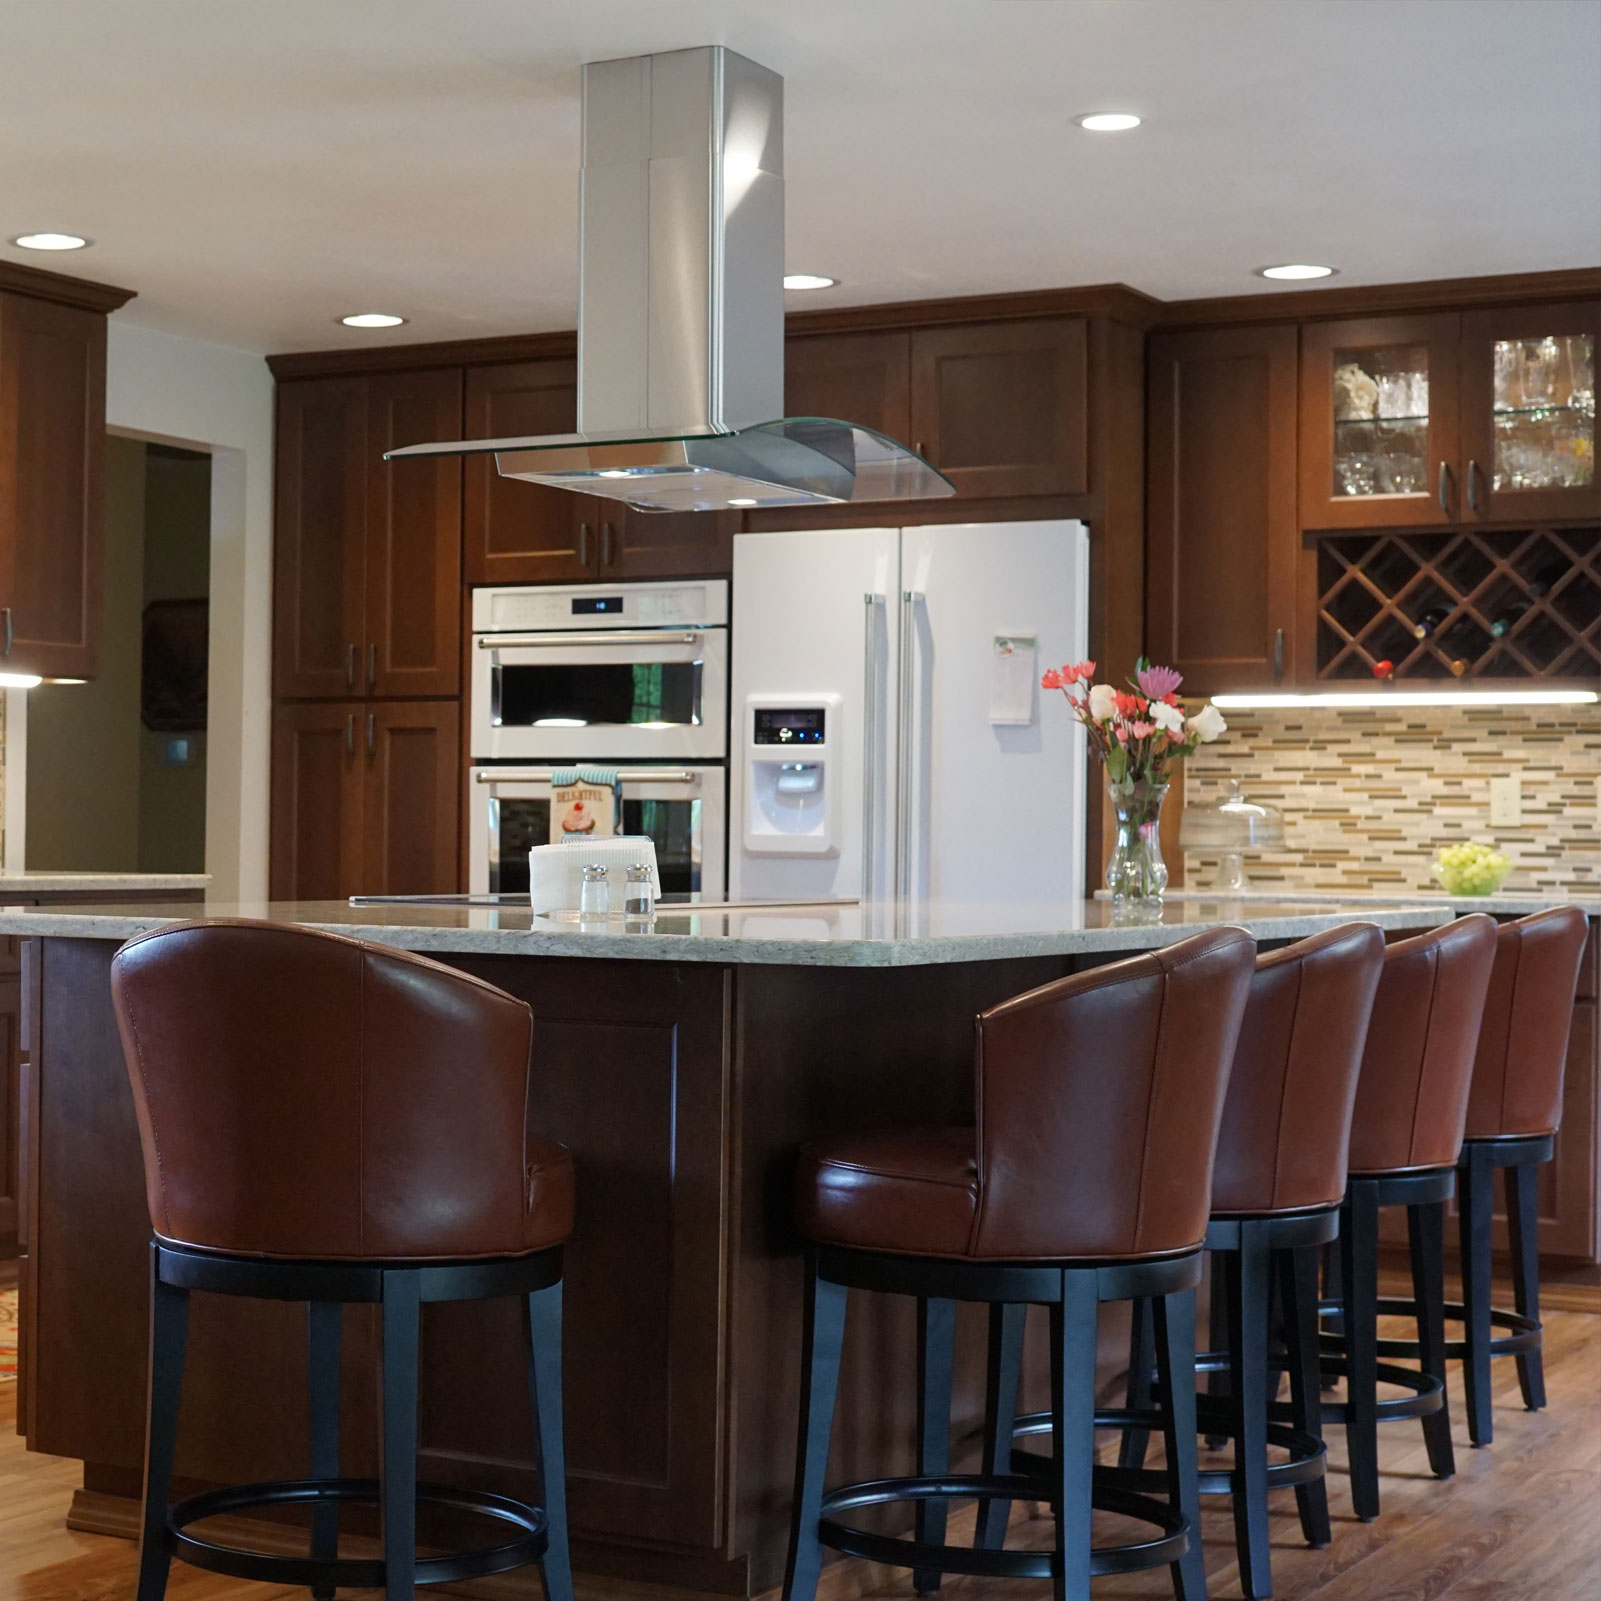 Kitchen Cabinet Dealers: Warm And Inviting Mocha Kitchen Cabinets